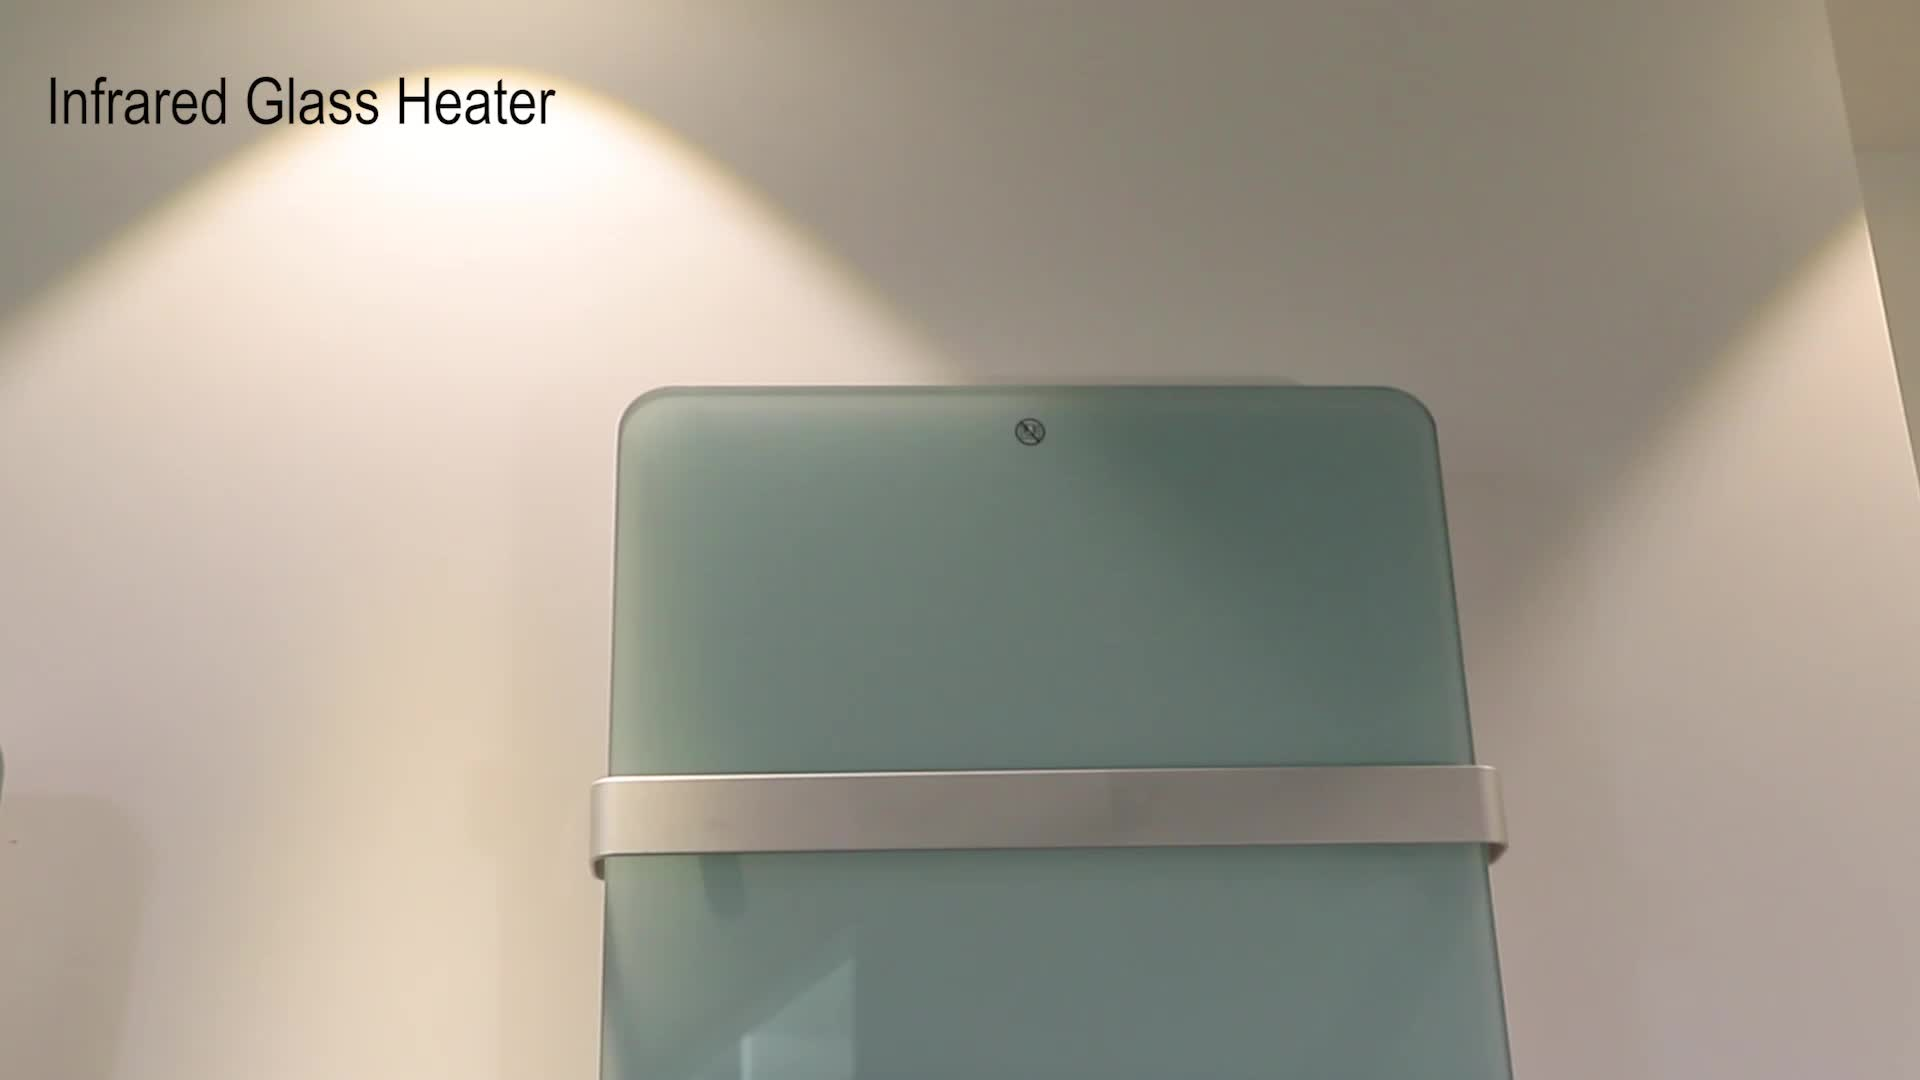 Bathroom infrared glass panel heater with LED display